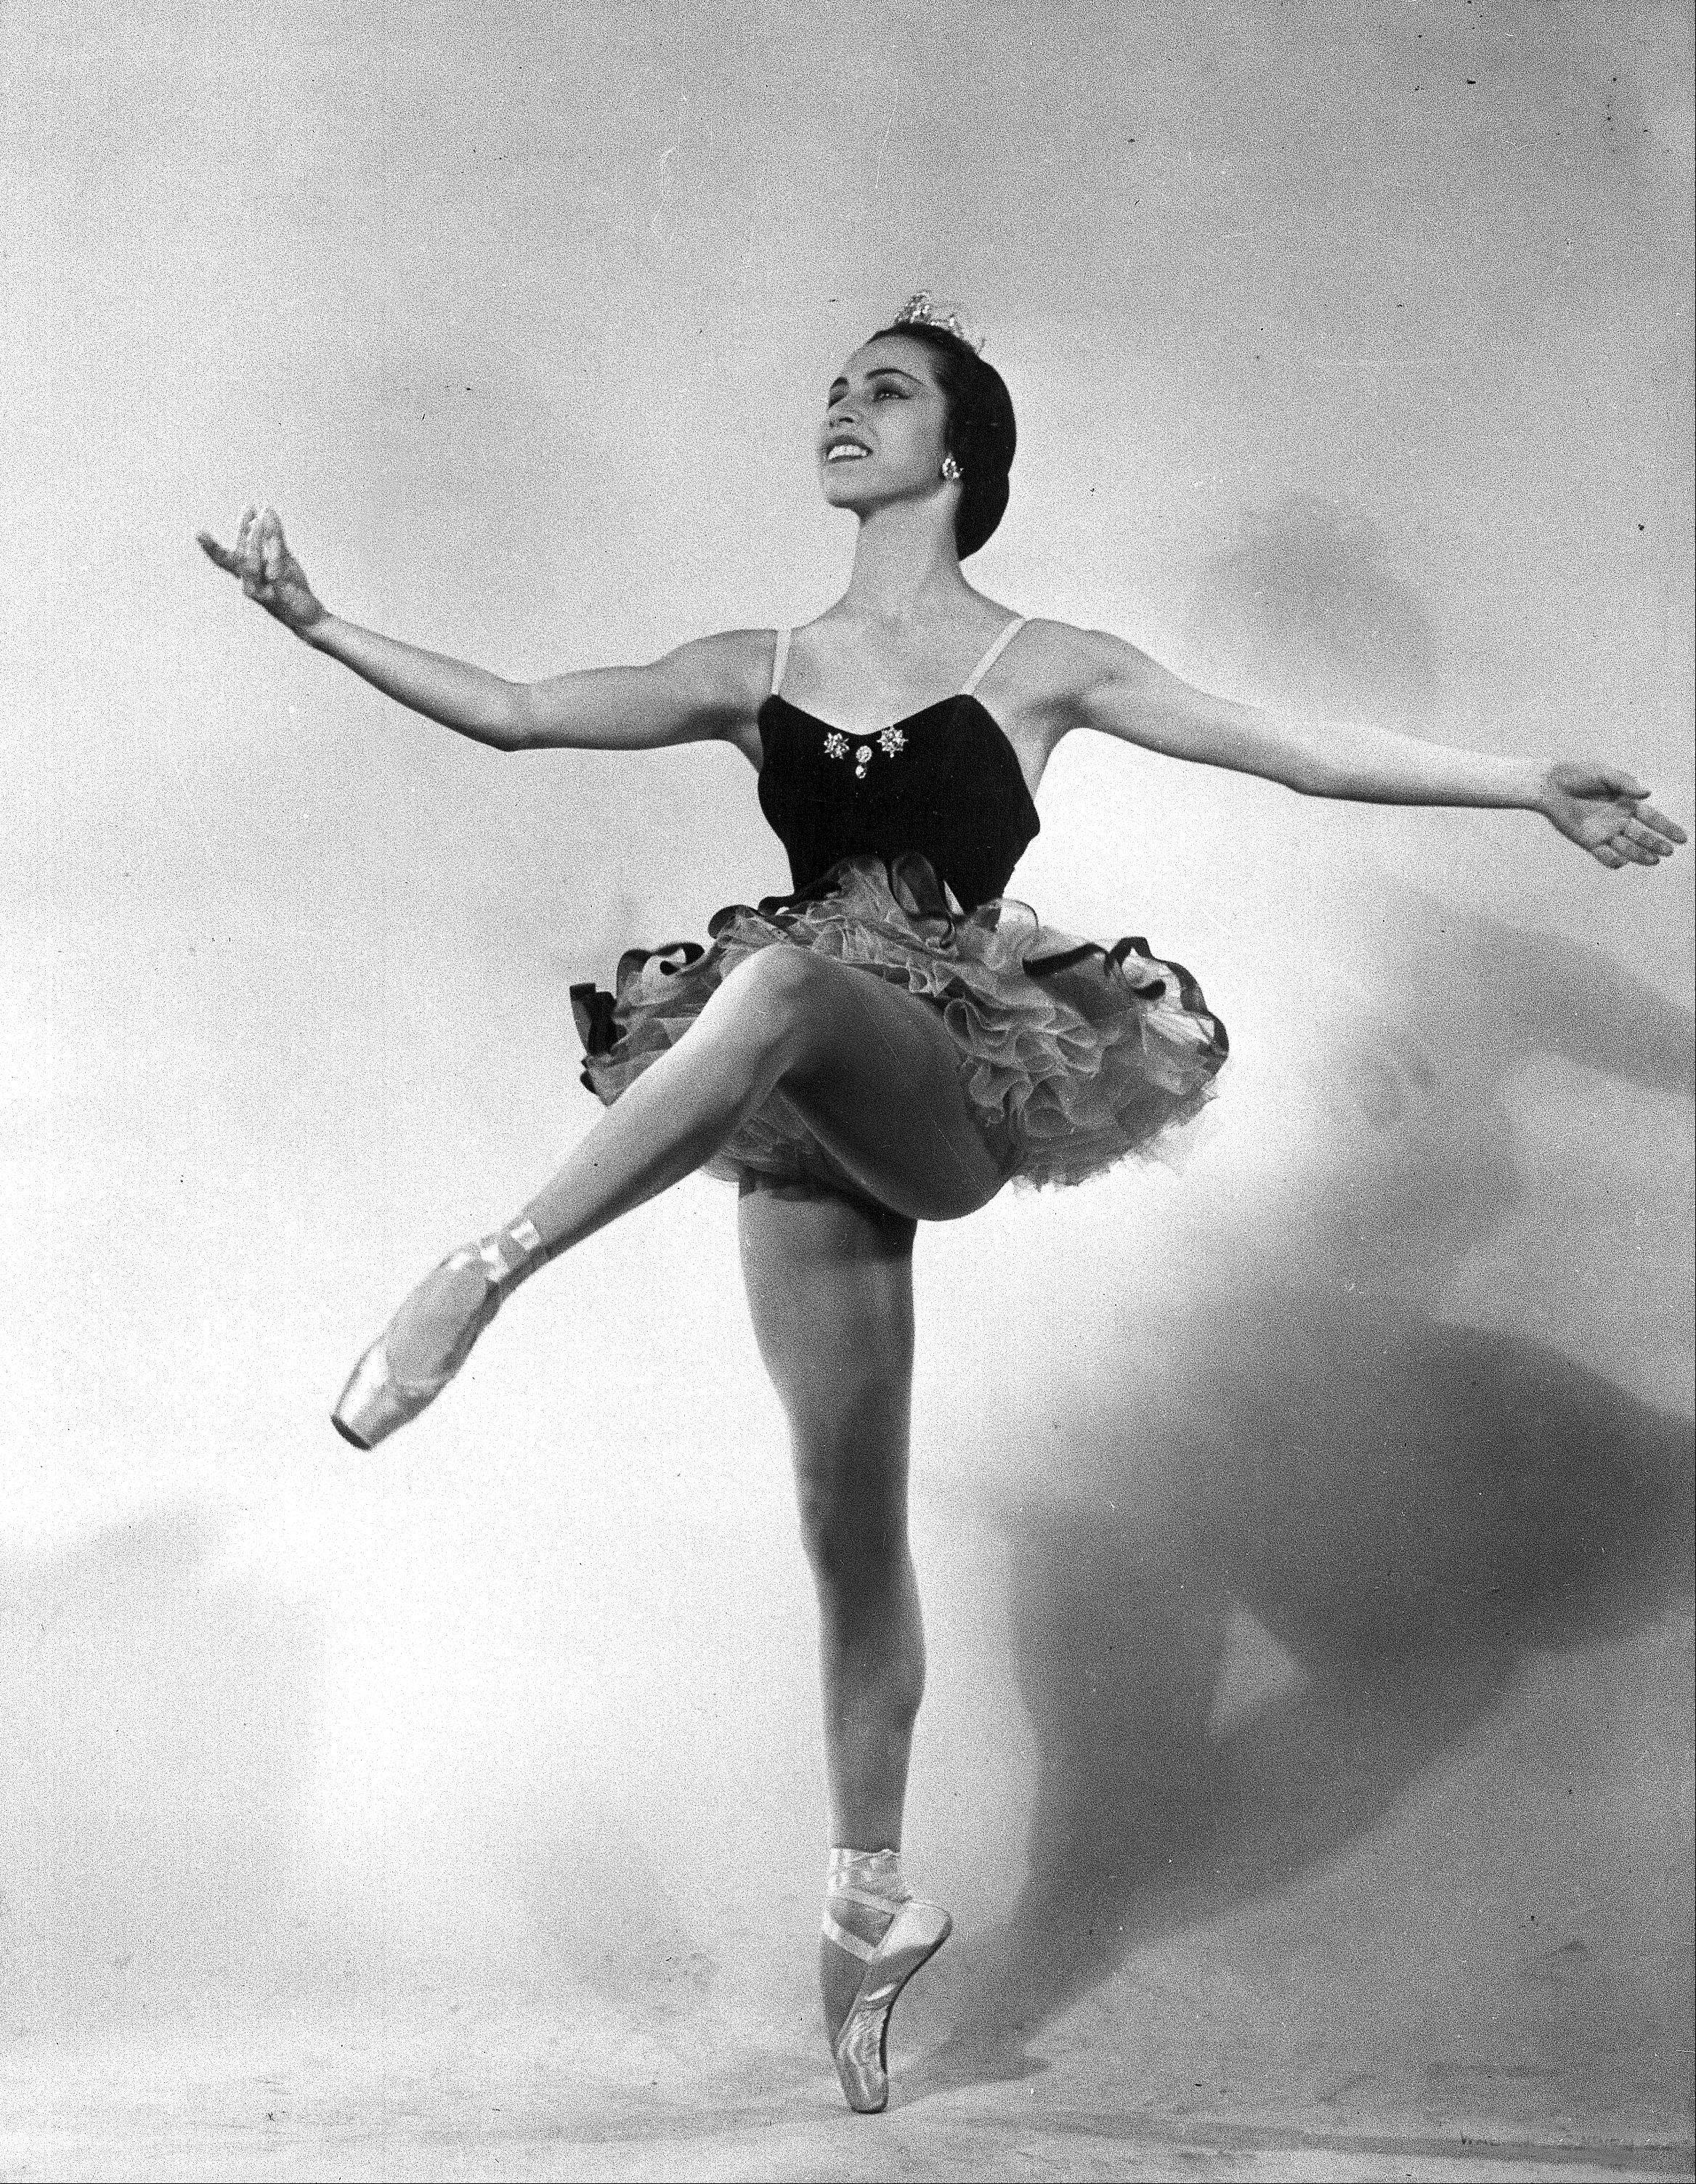 This 1951 file photo shows ballet dancer Maria Tallchief of the New York City Ballet. Tallchief died Thursday in Chicago at the age of 88.